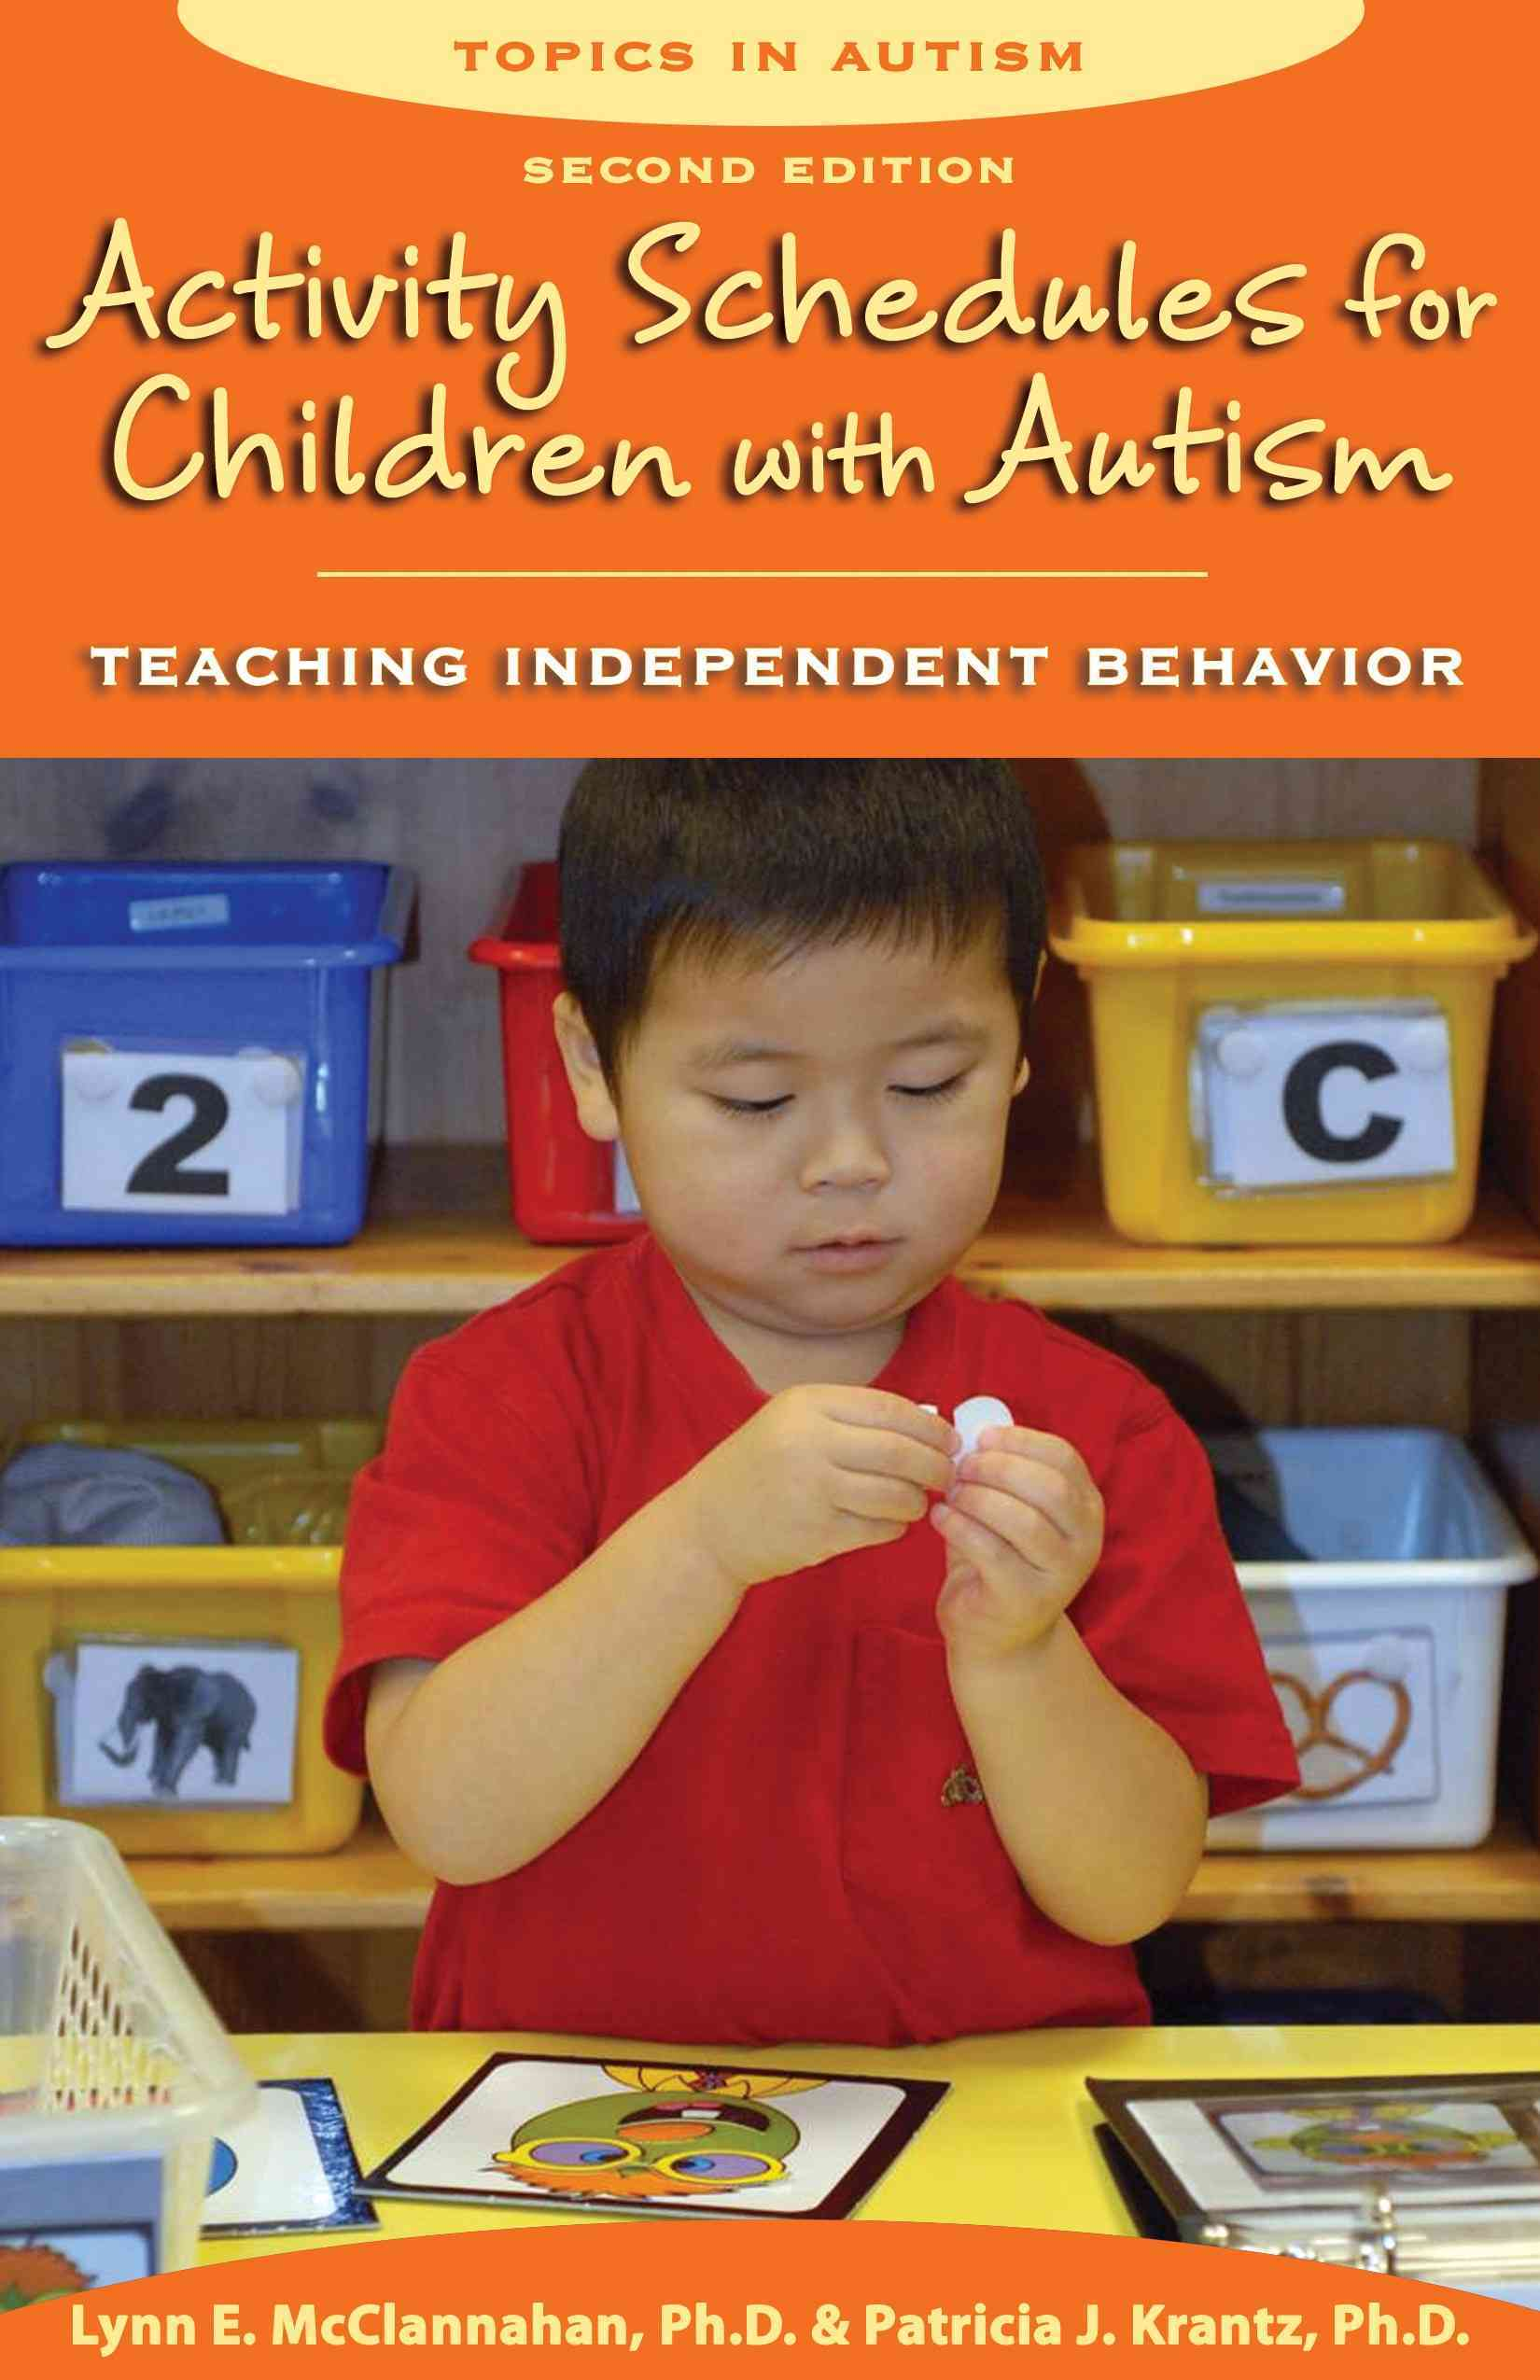 Activity Schedules for Children With Autism By McClannahan, Lynn E., Ph.D./ Krantz, Patricia J., Ph.D.